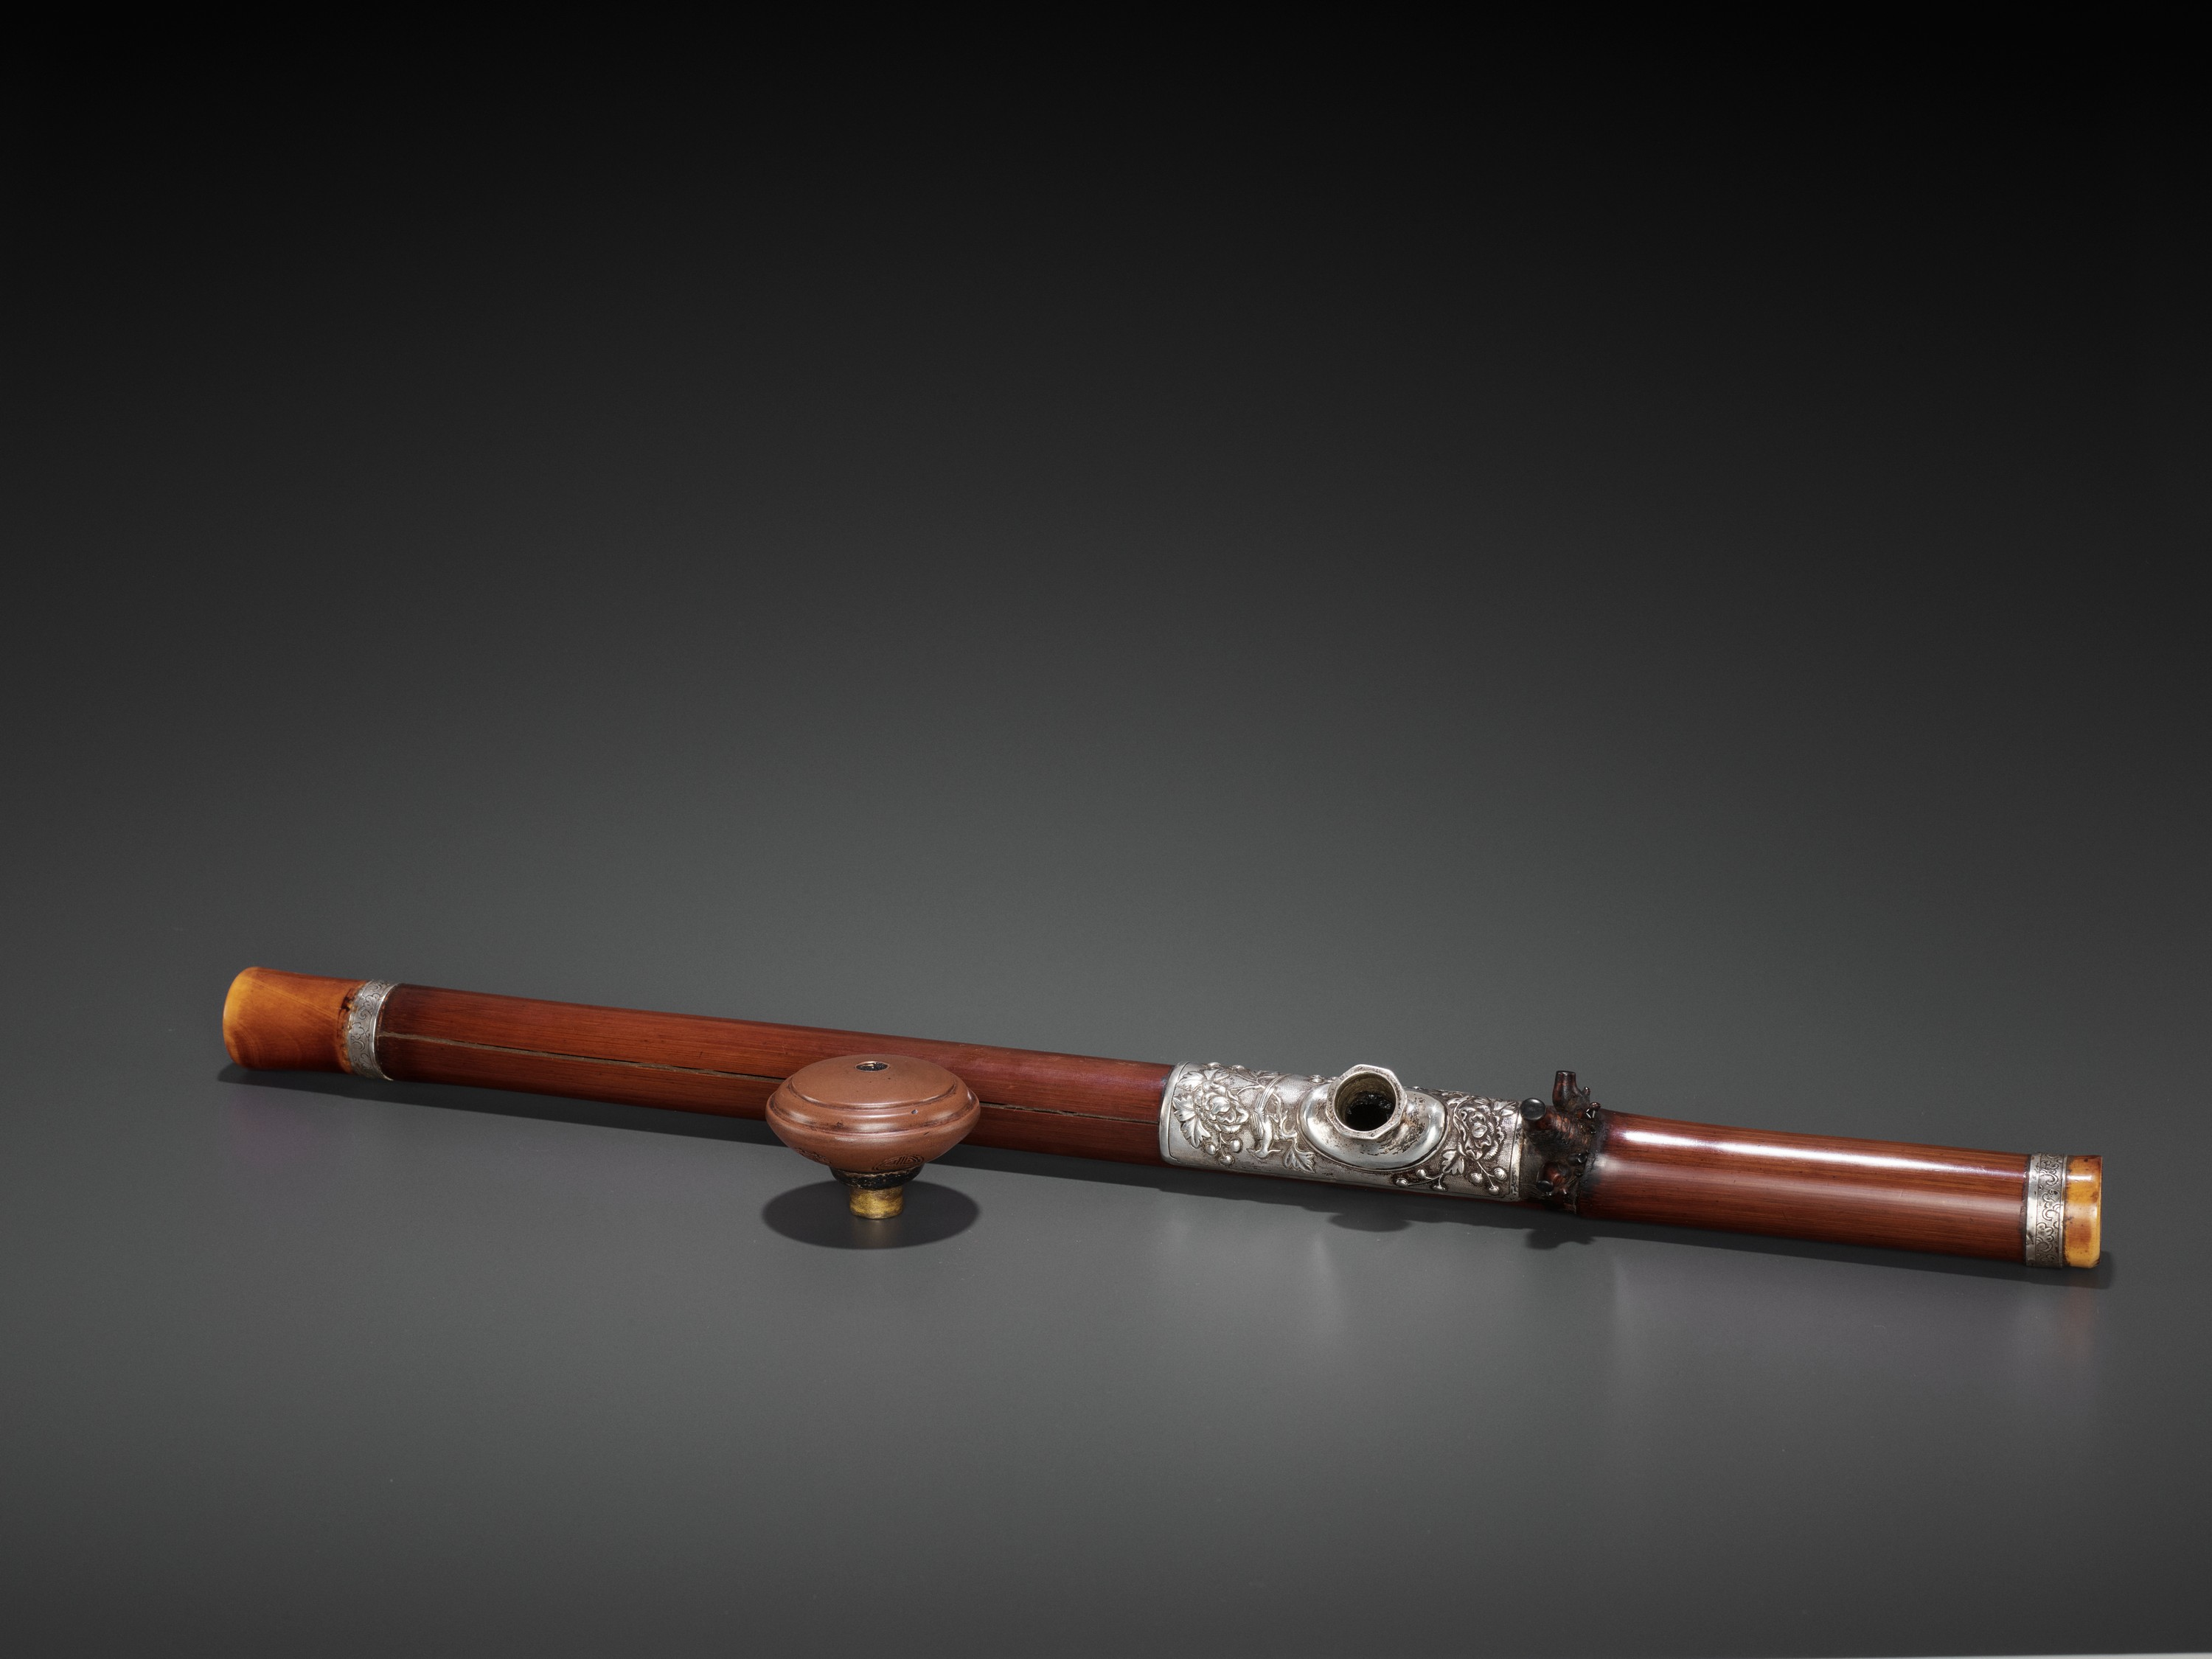 A BAMBOO OPIUM PIPE WITH IVORY, SILVER AND YIXING CERAMIC FITTINGS, LATE QING TO REPUBLIC - Image 3 of 9